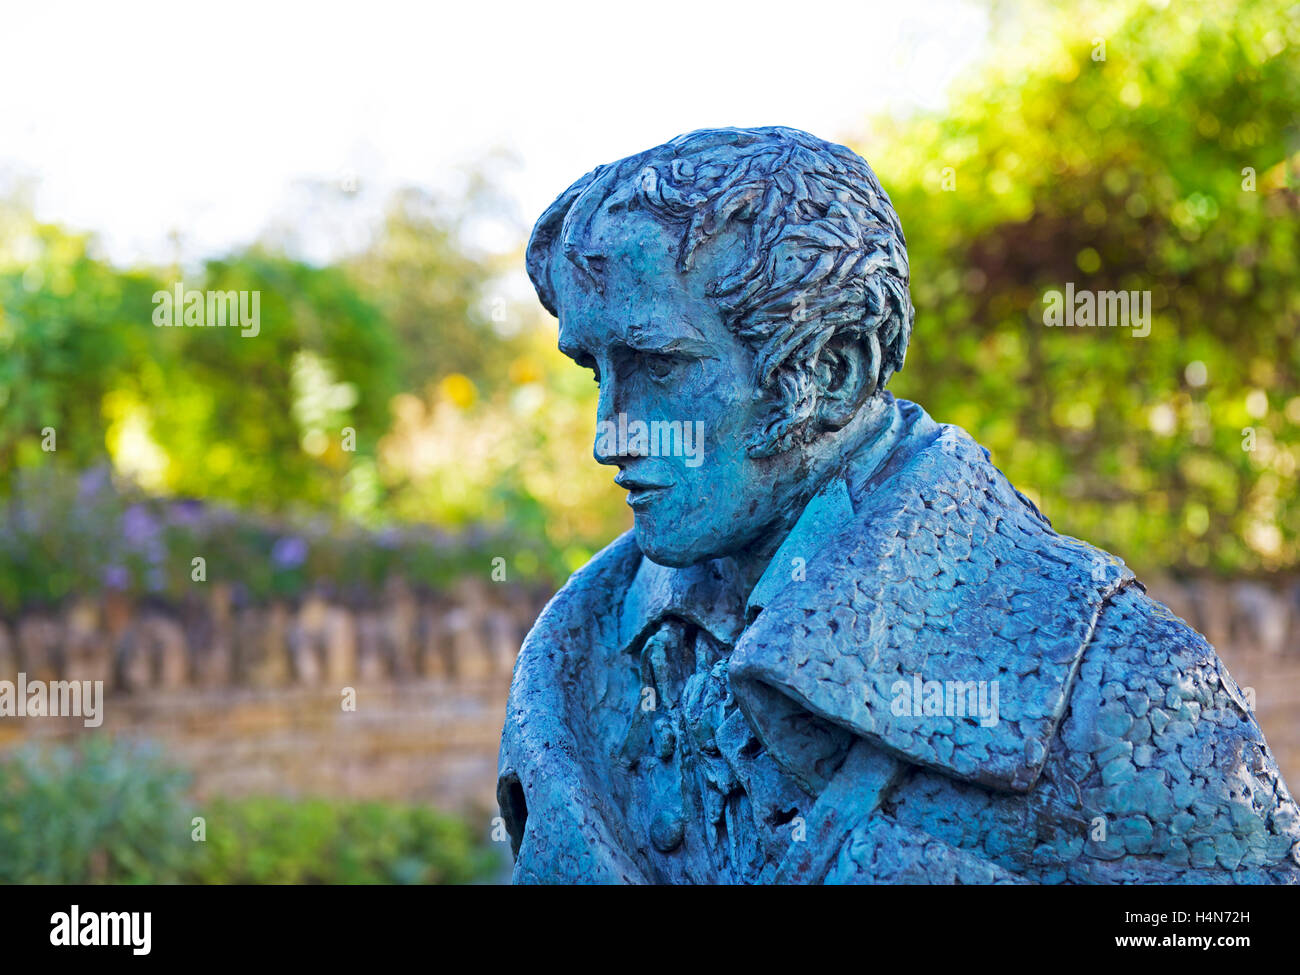 Sculpture of peasant poet John Clare, outside the cottage where he was born, in Helpston, Cambridgeshire, England - Stock Image